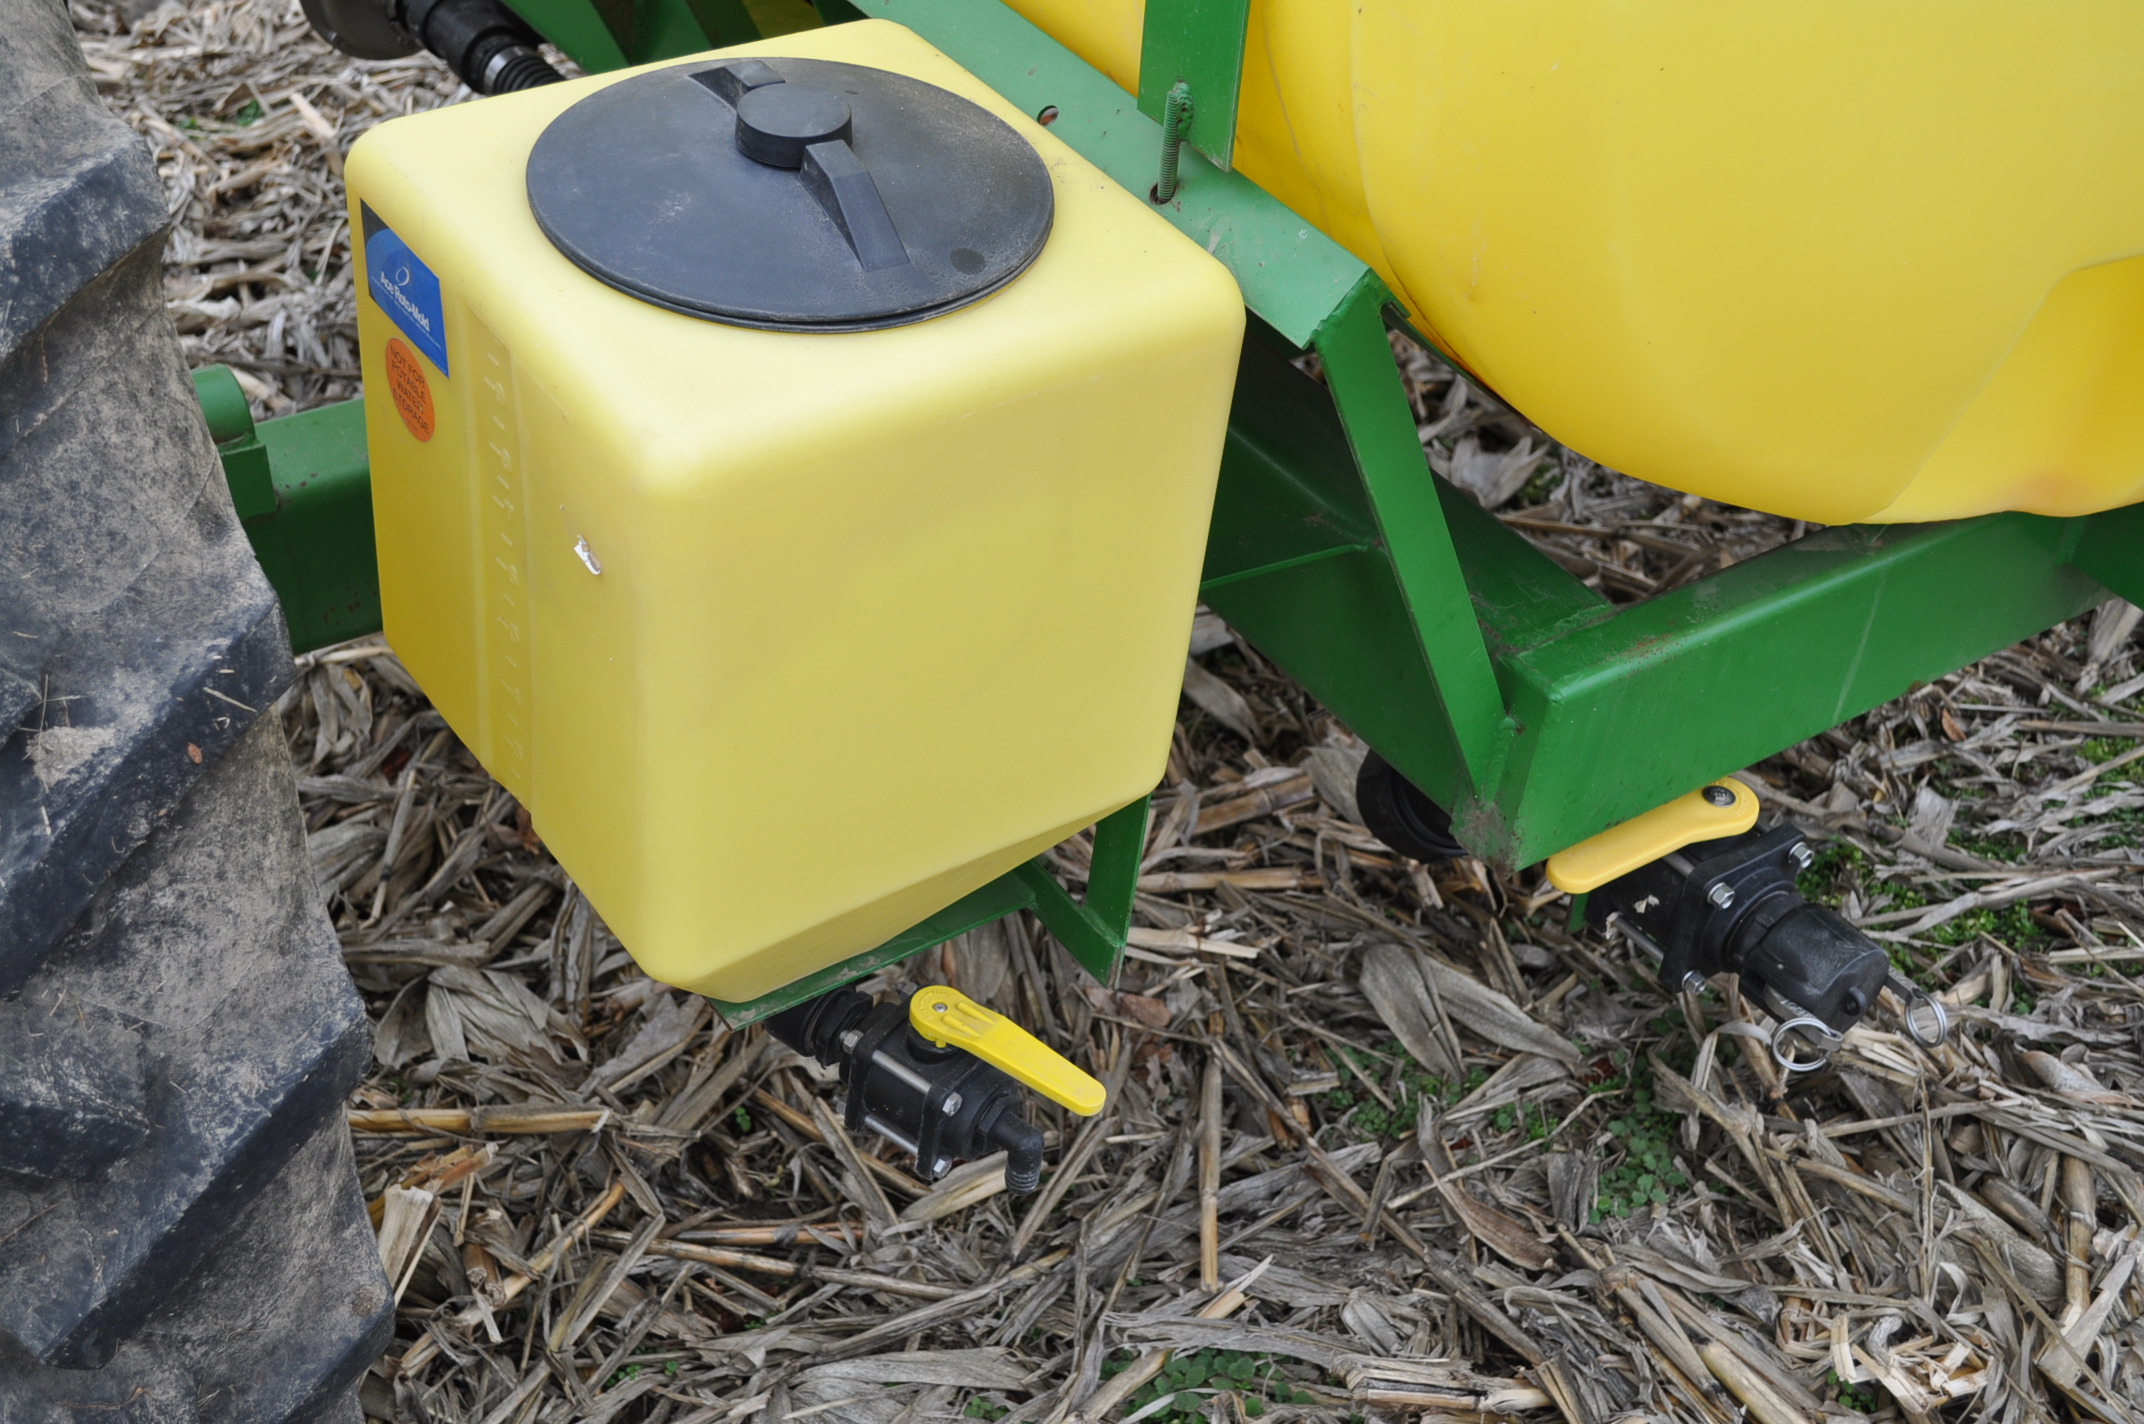 Spray King 28% applicator, 11 coulters w/ knives, 850 poly tank, SS hyd pump, spot spray nozzles - Image 15 of 15